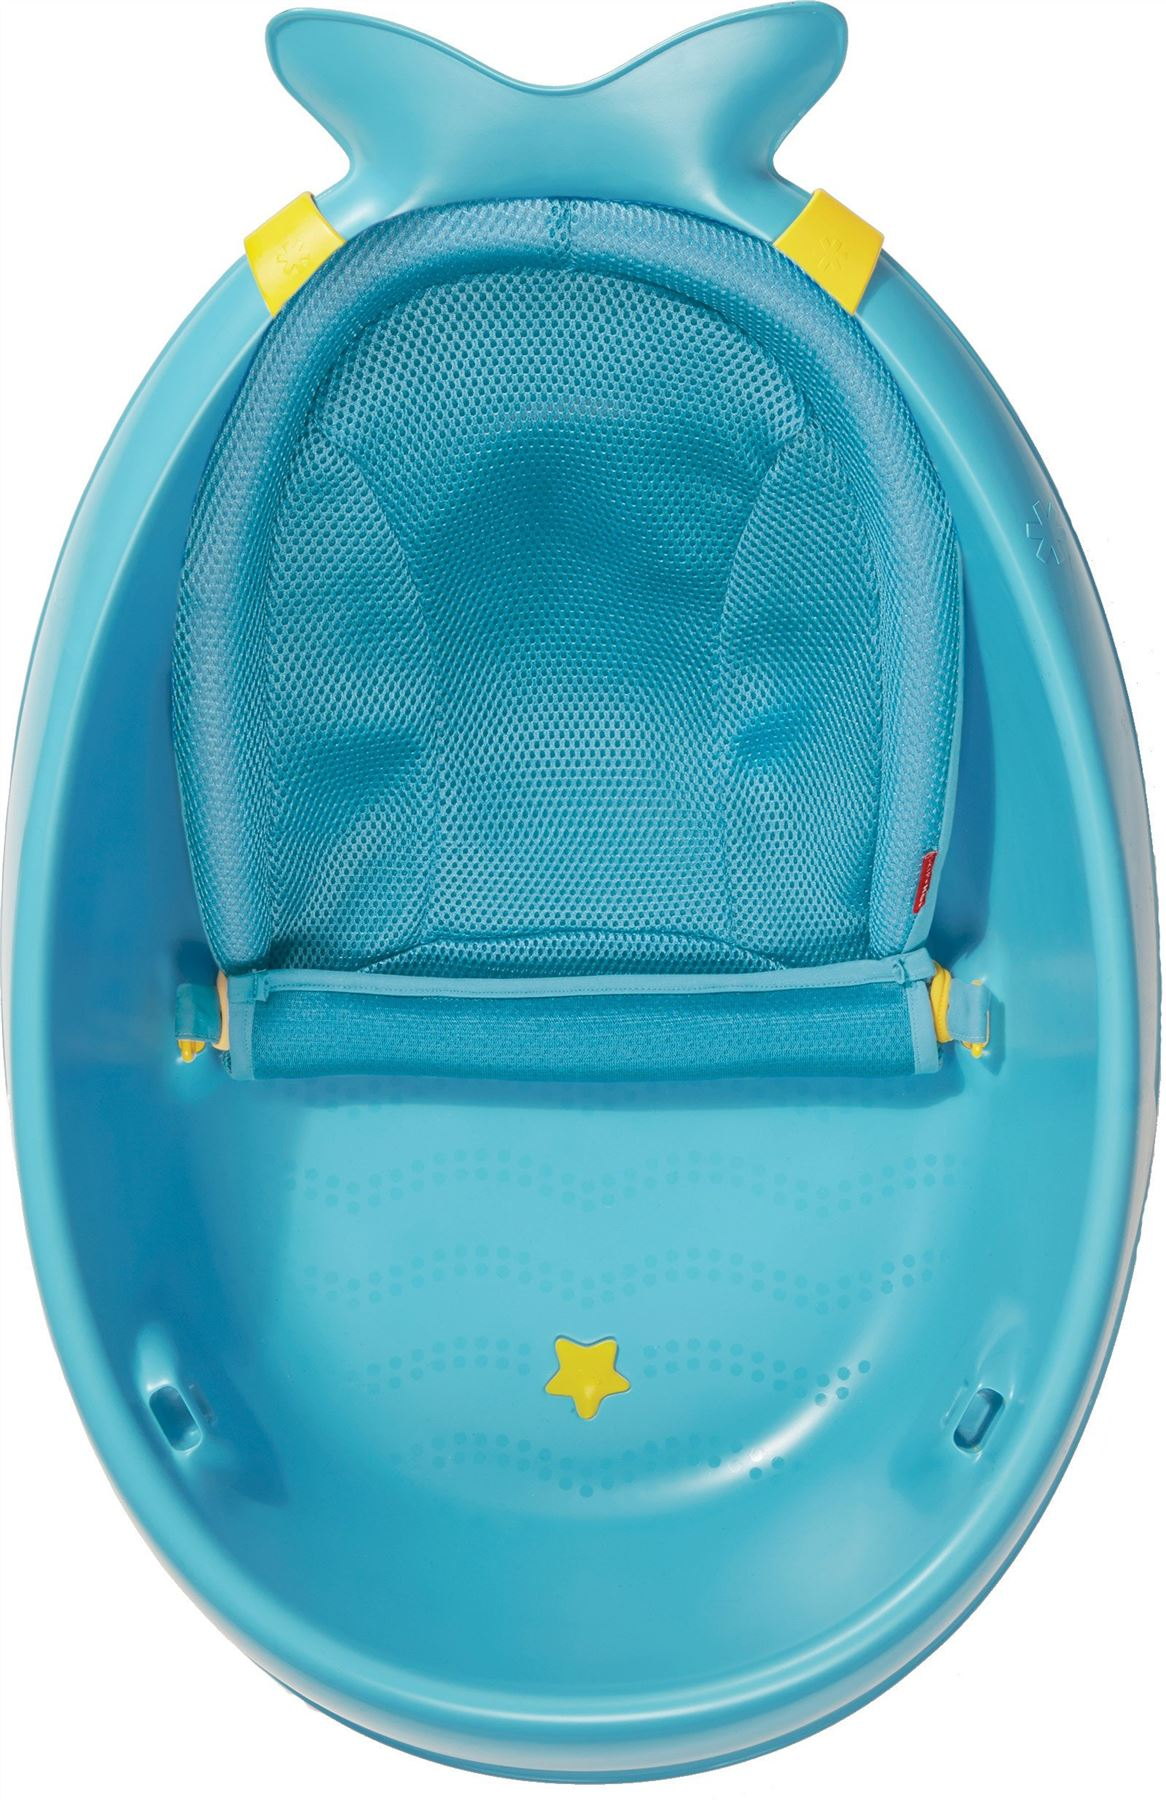 Skip Hop MOBY SMART SLING 3-STAGE BATH TUB Removable Mesh Baby ...